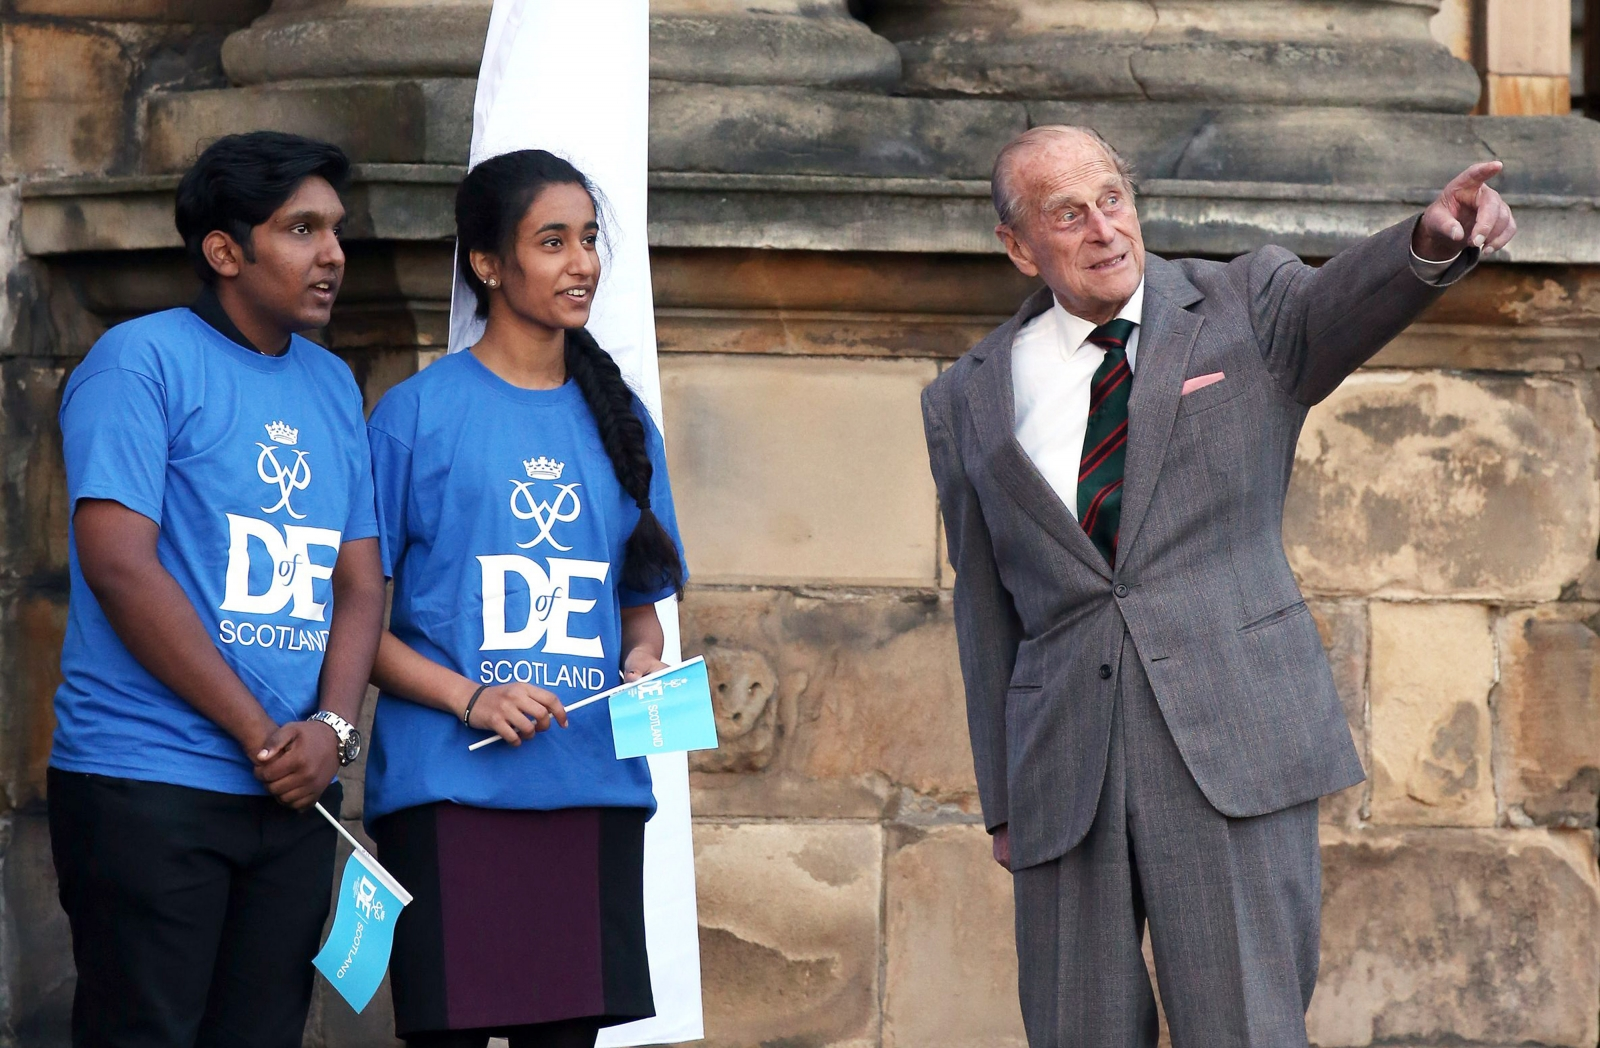 Prince Philip pointing